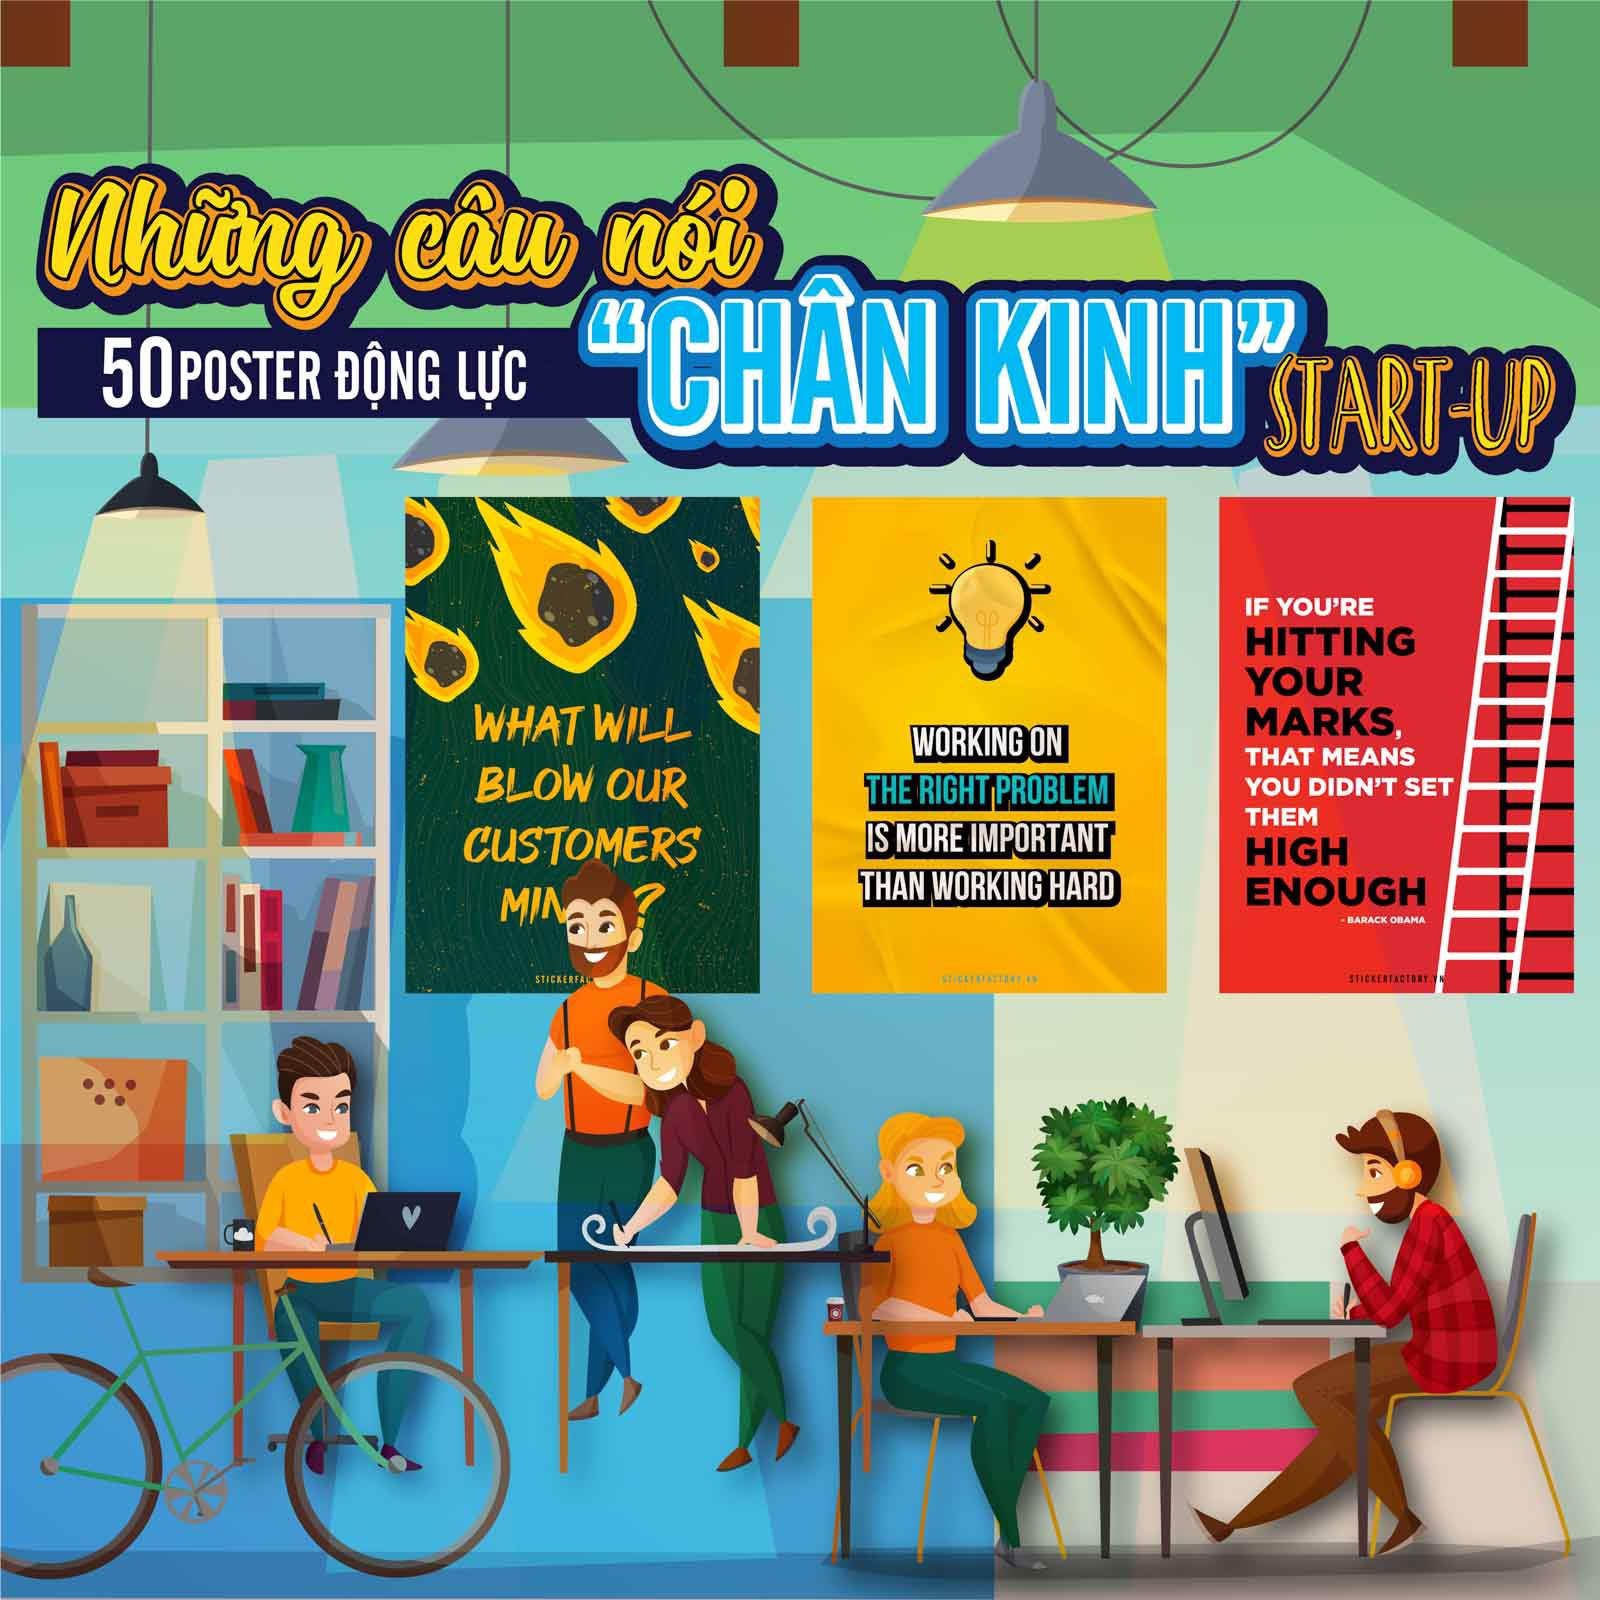 The best way to do it is to do it - Poster động lực Chân Kinh Startup